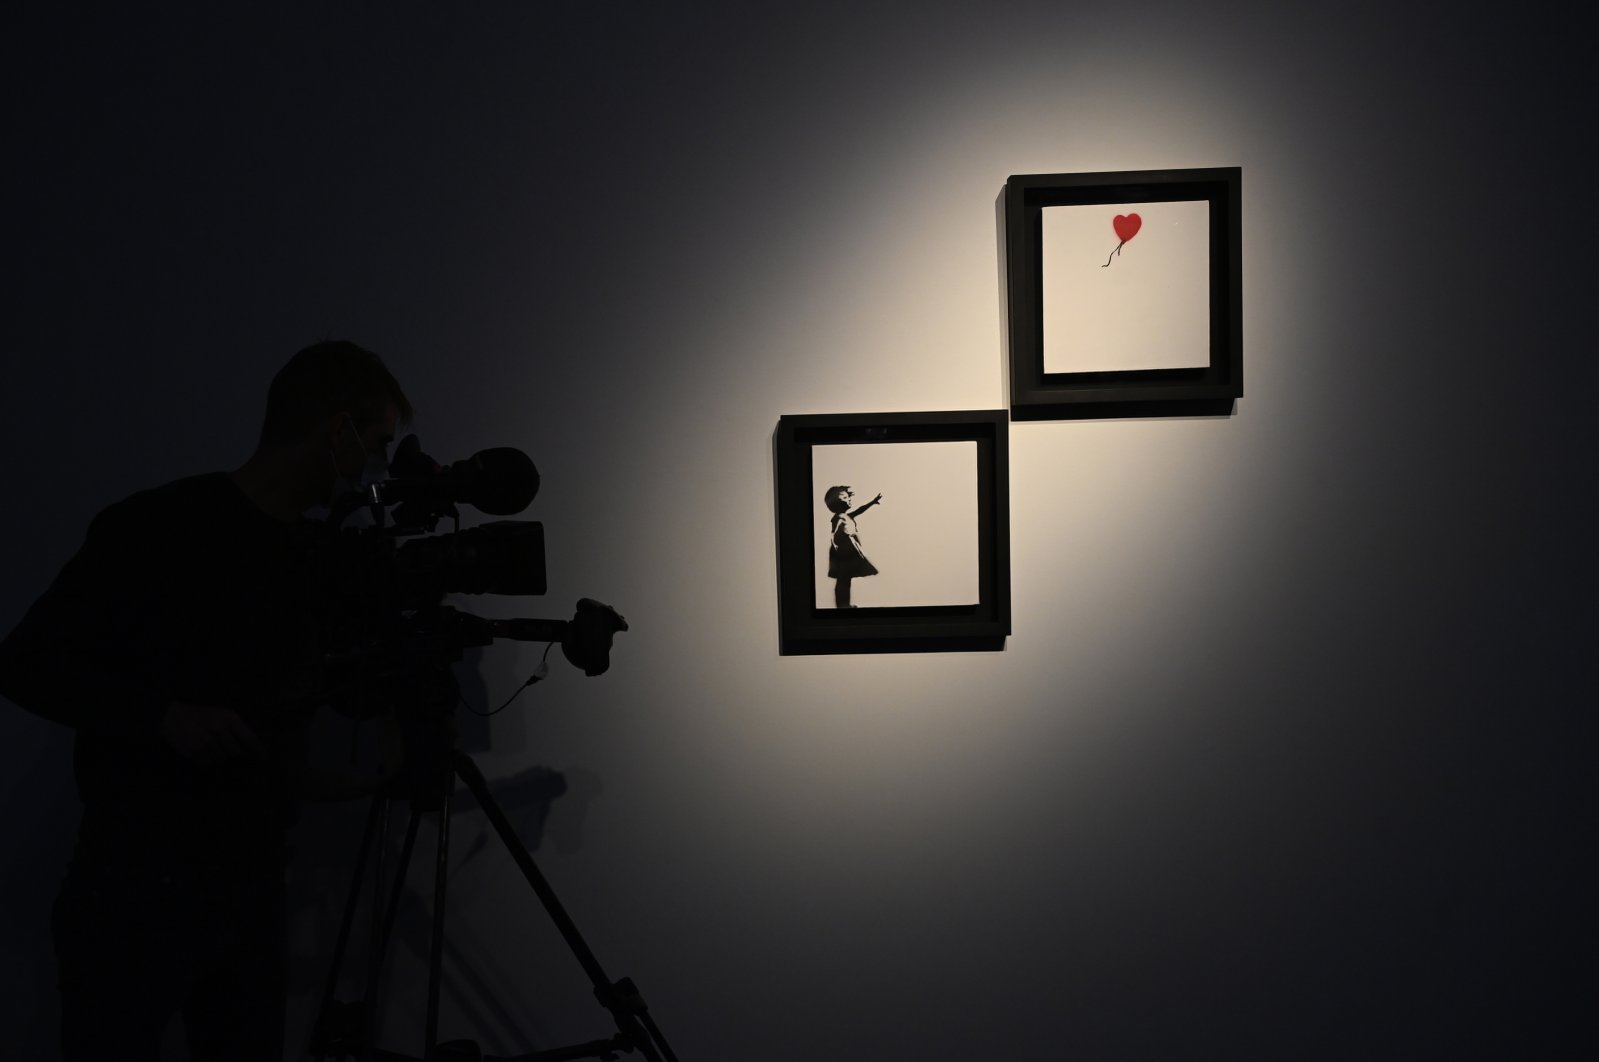 """A cameraman stands next to artwork by British artist Banksy titled """"Girl and Ballon"""" (two parts) during a press view at the Christie's auction house in London, Britain, Oct. 1, 2021. (EPA Photo)"""